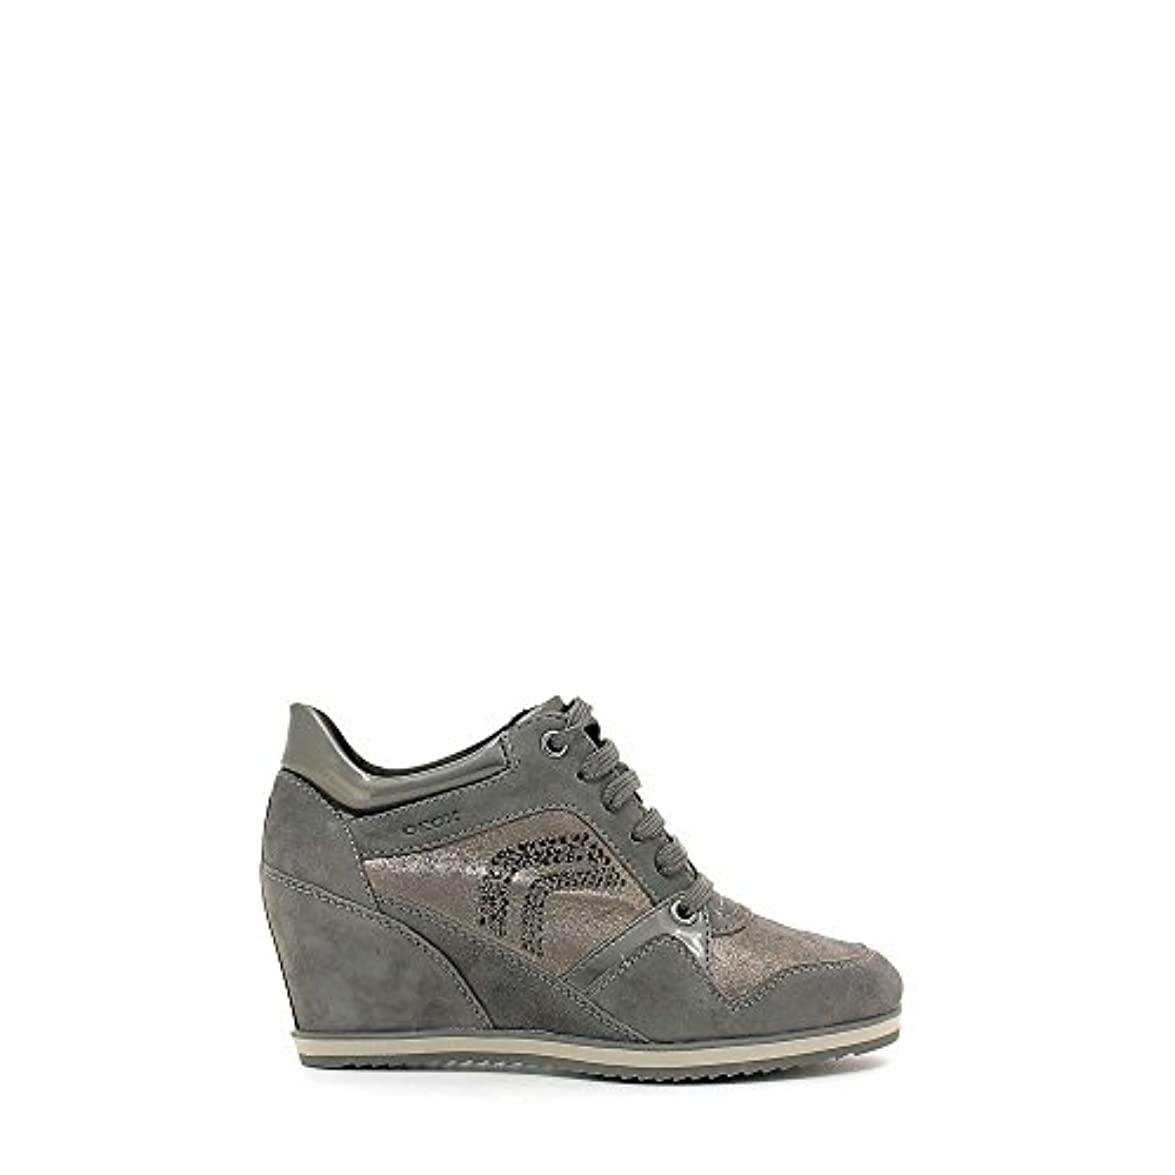 Geox D5454a0ma21 Sneakers Donna